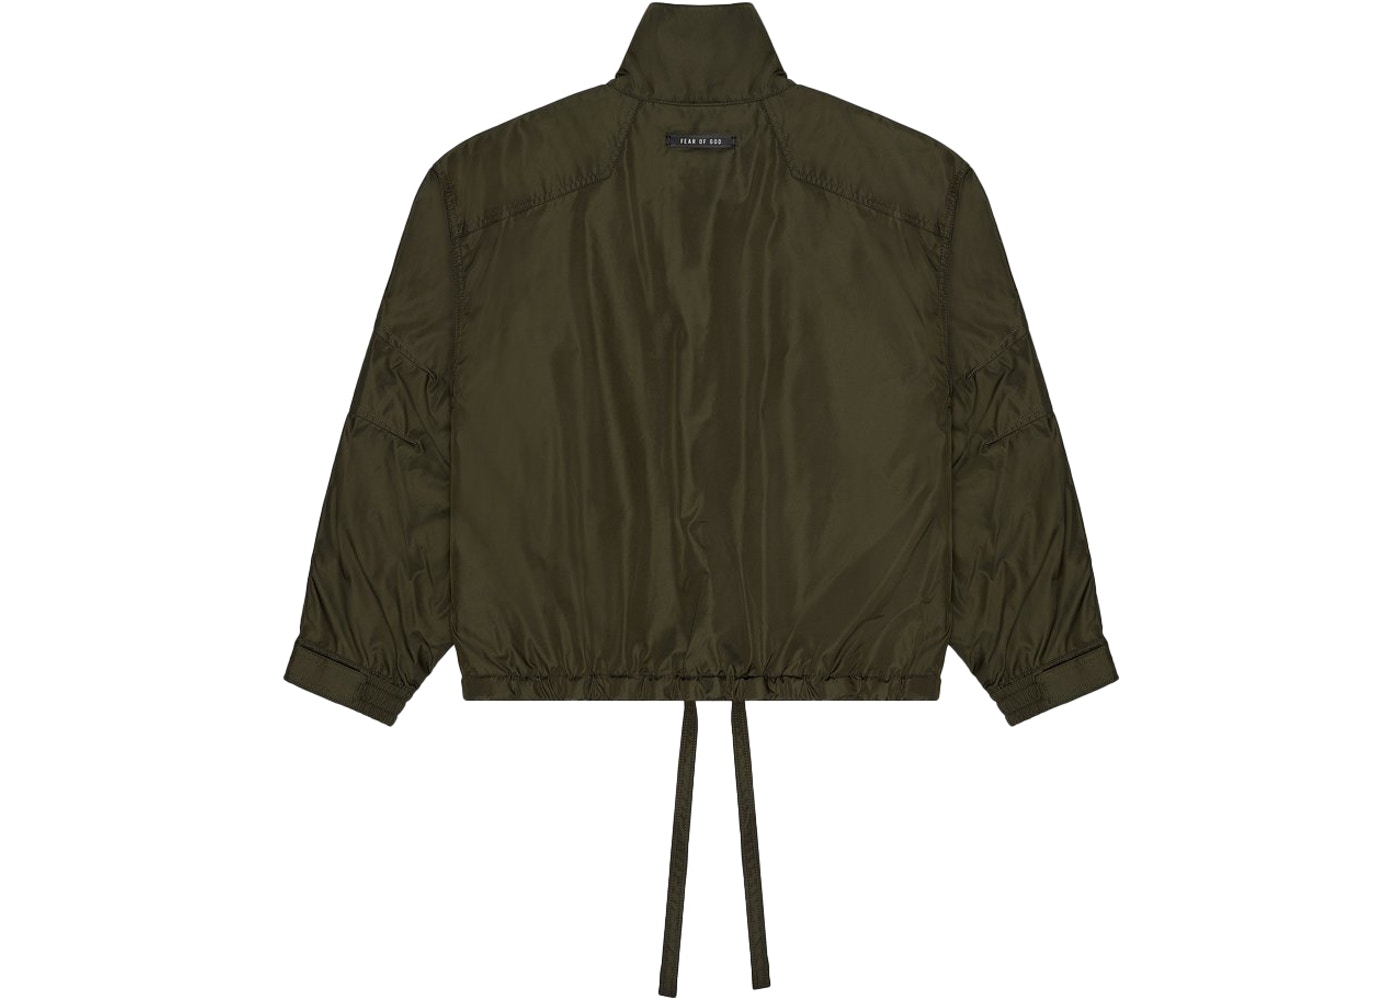 FEAR OF GOD Pullover Track Jacket Olive Green - SIXTH COLLECTION